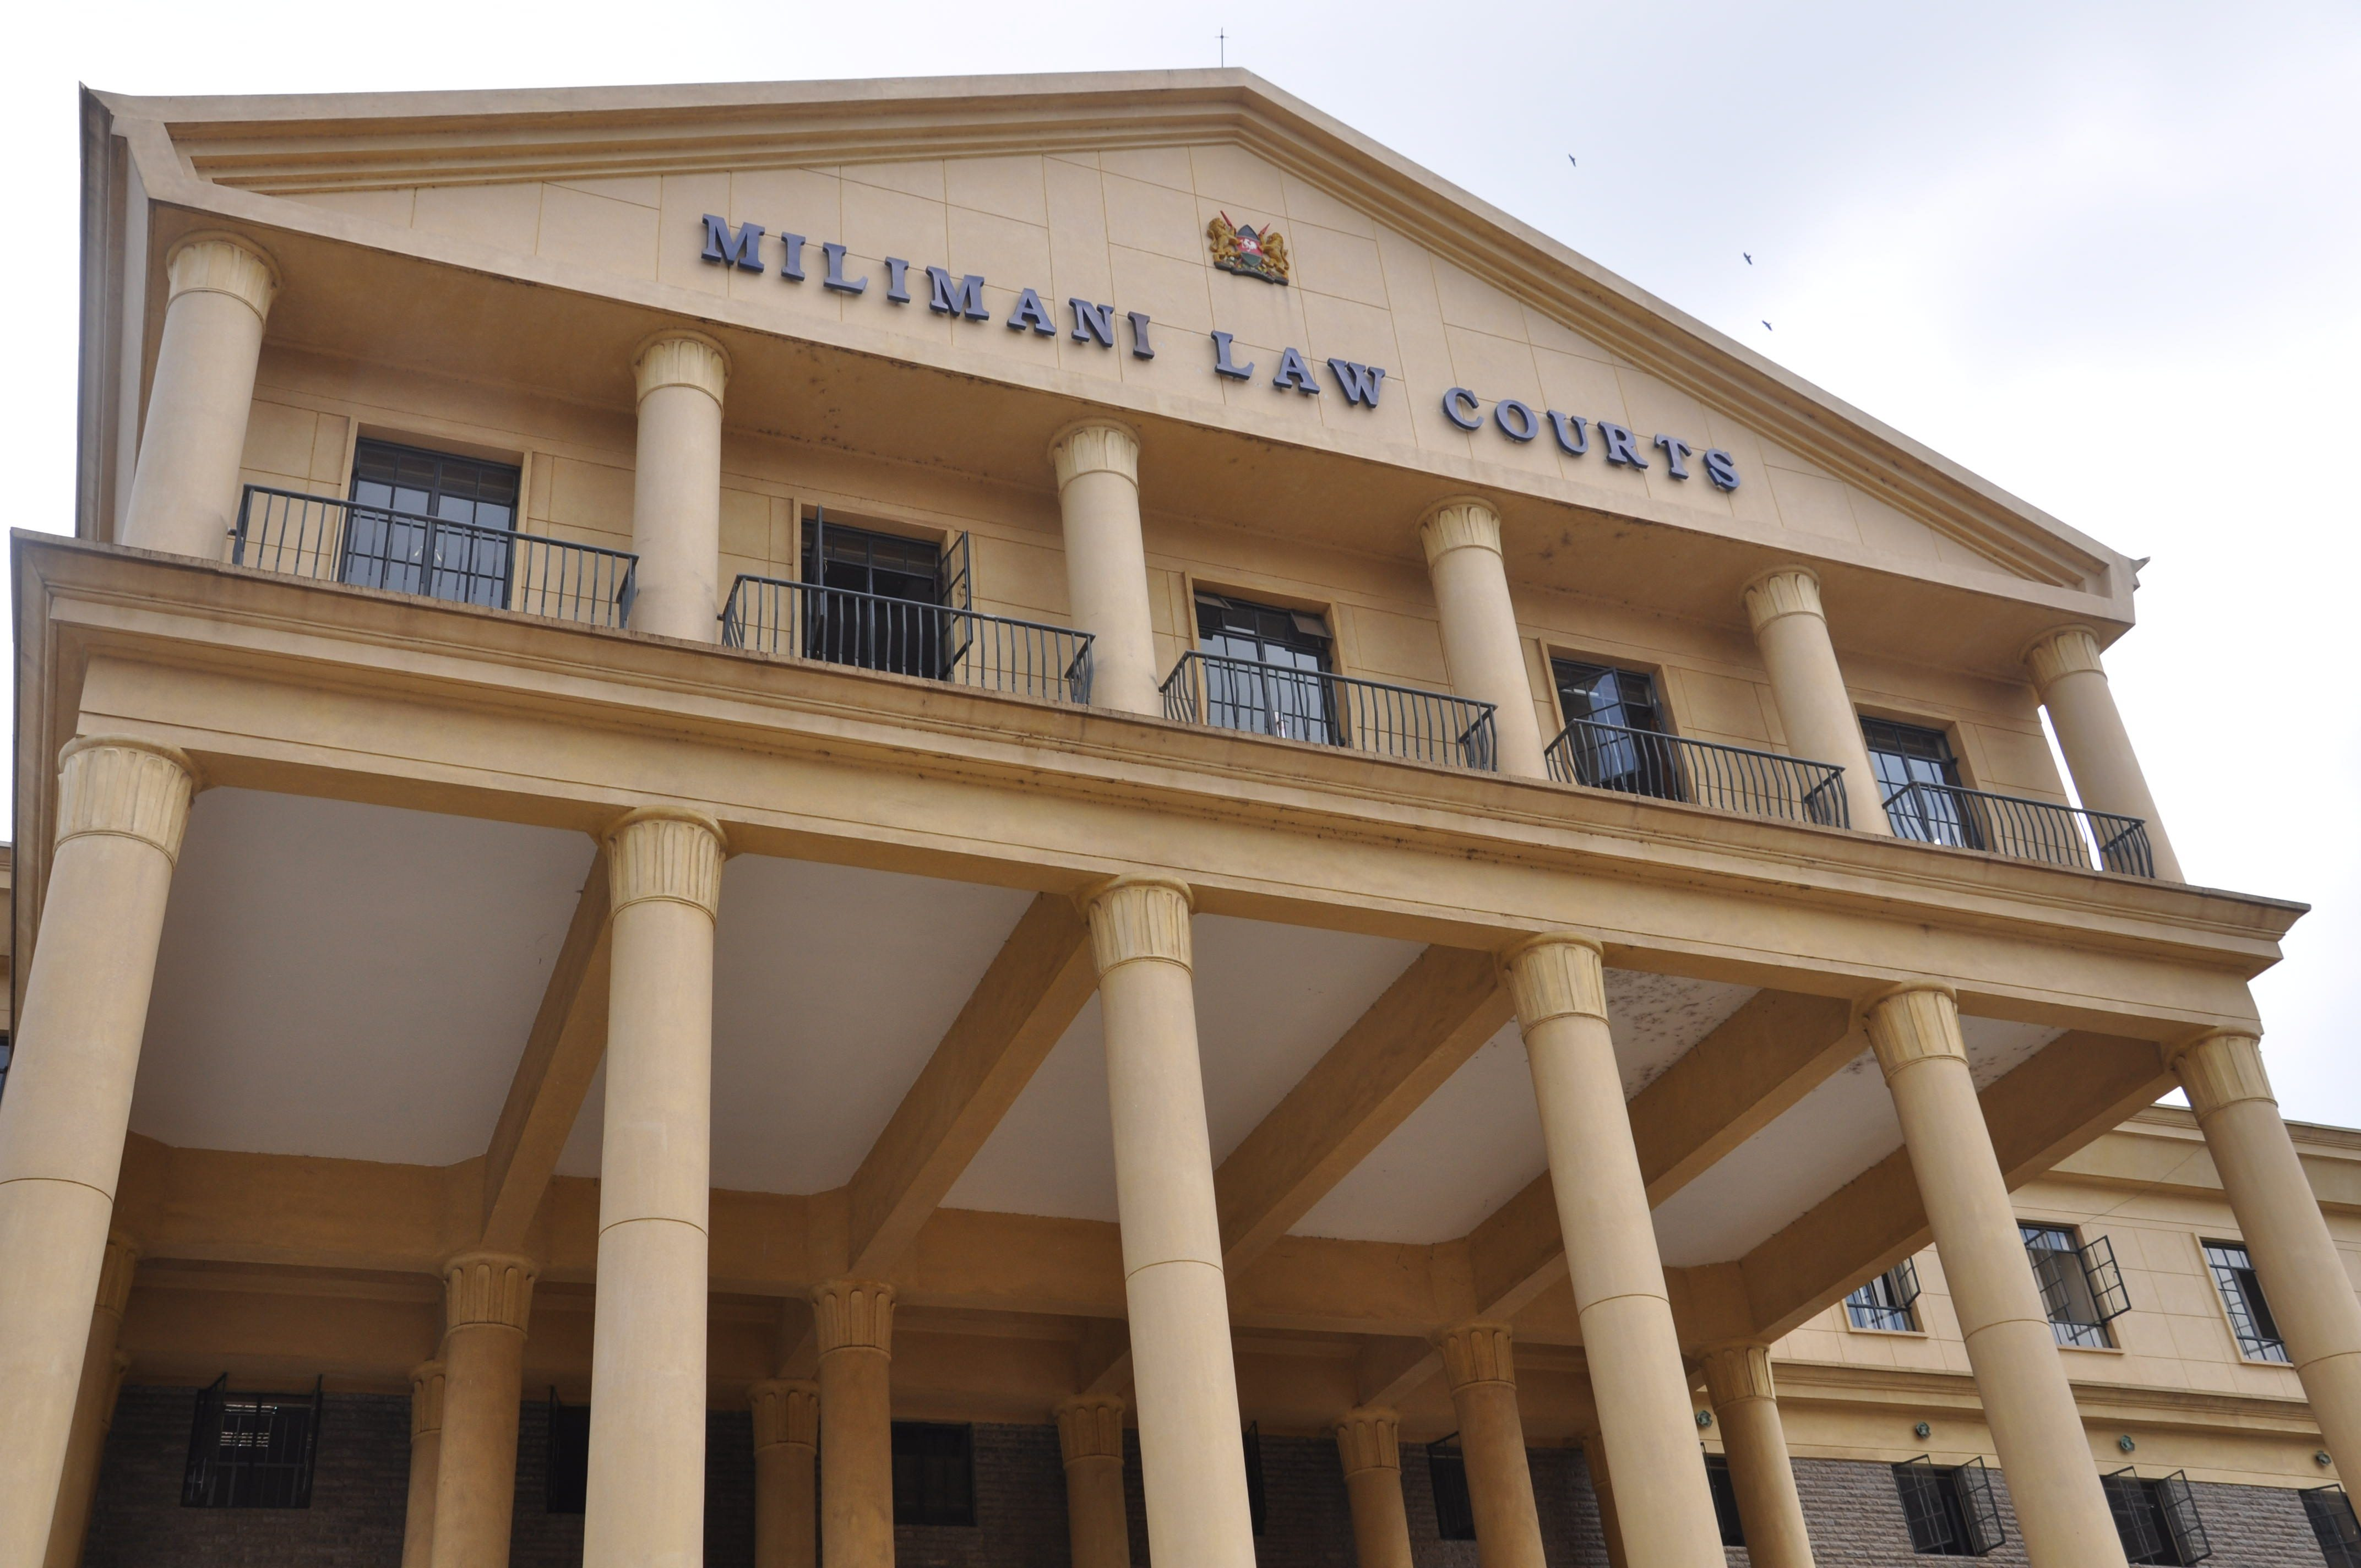 Officer sues JSC, association for financial impropriety